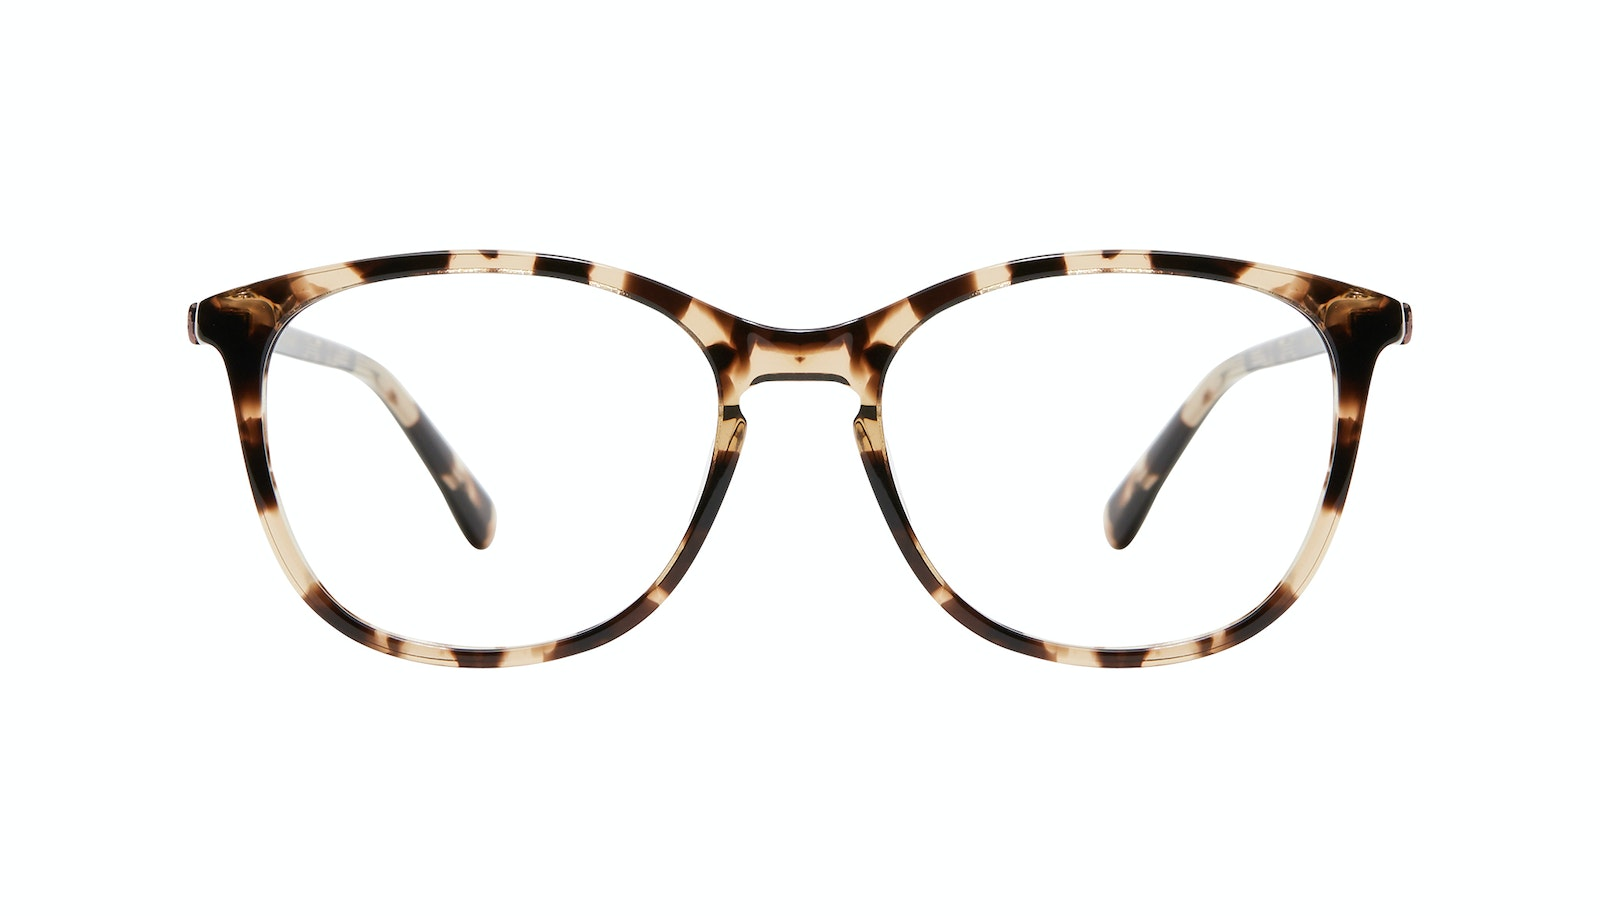 Affordable Fashion Glasses Rectangle Square Round Eyeglasses Women Nadine M Snake Skin